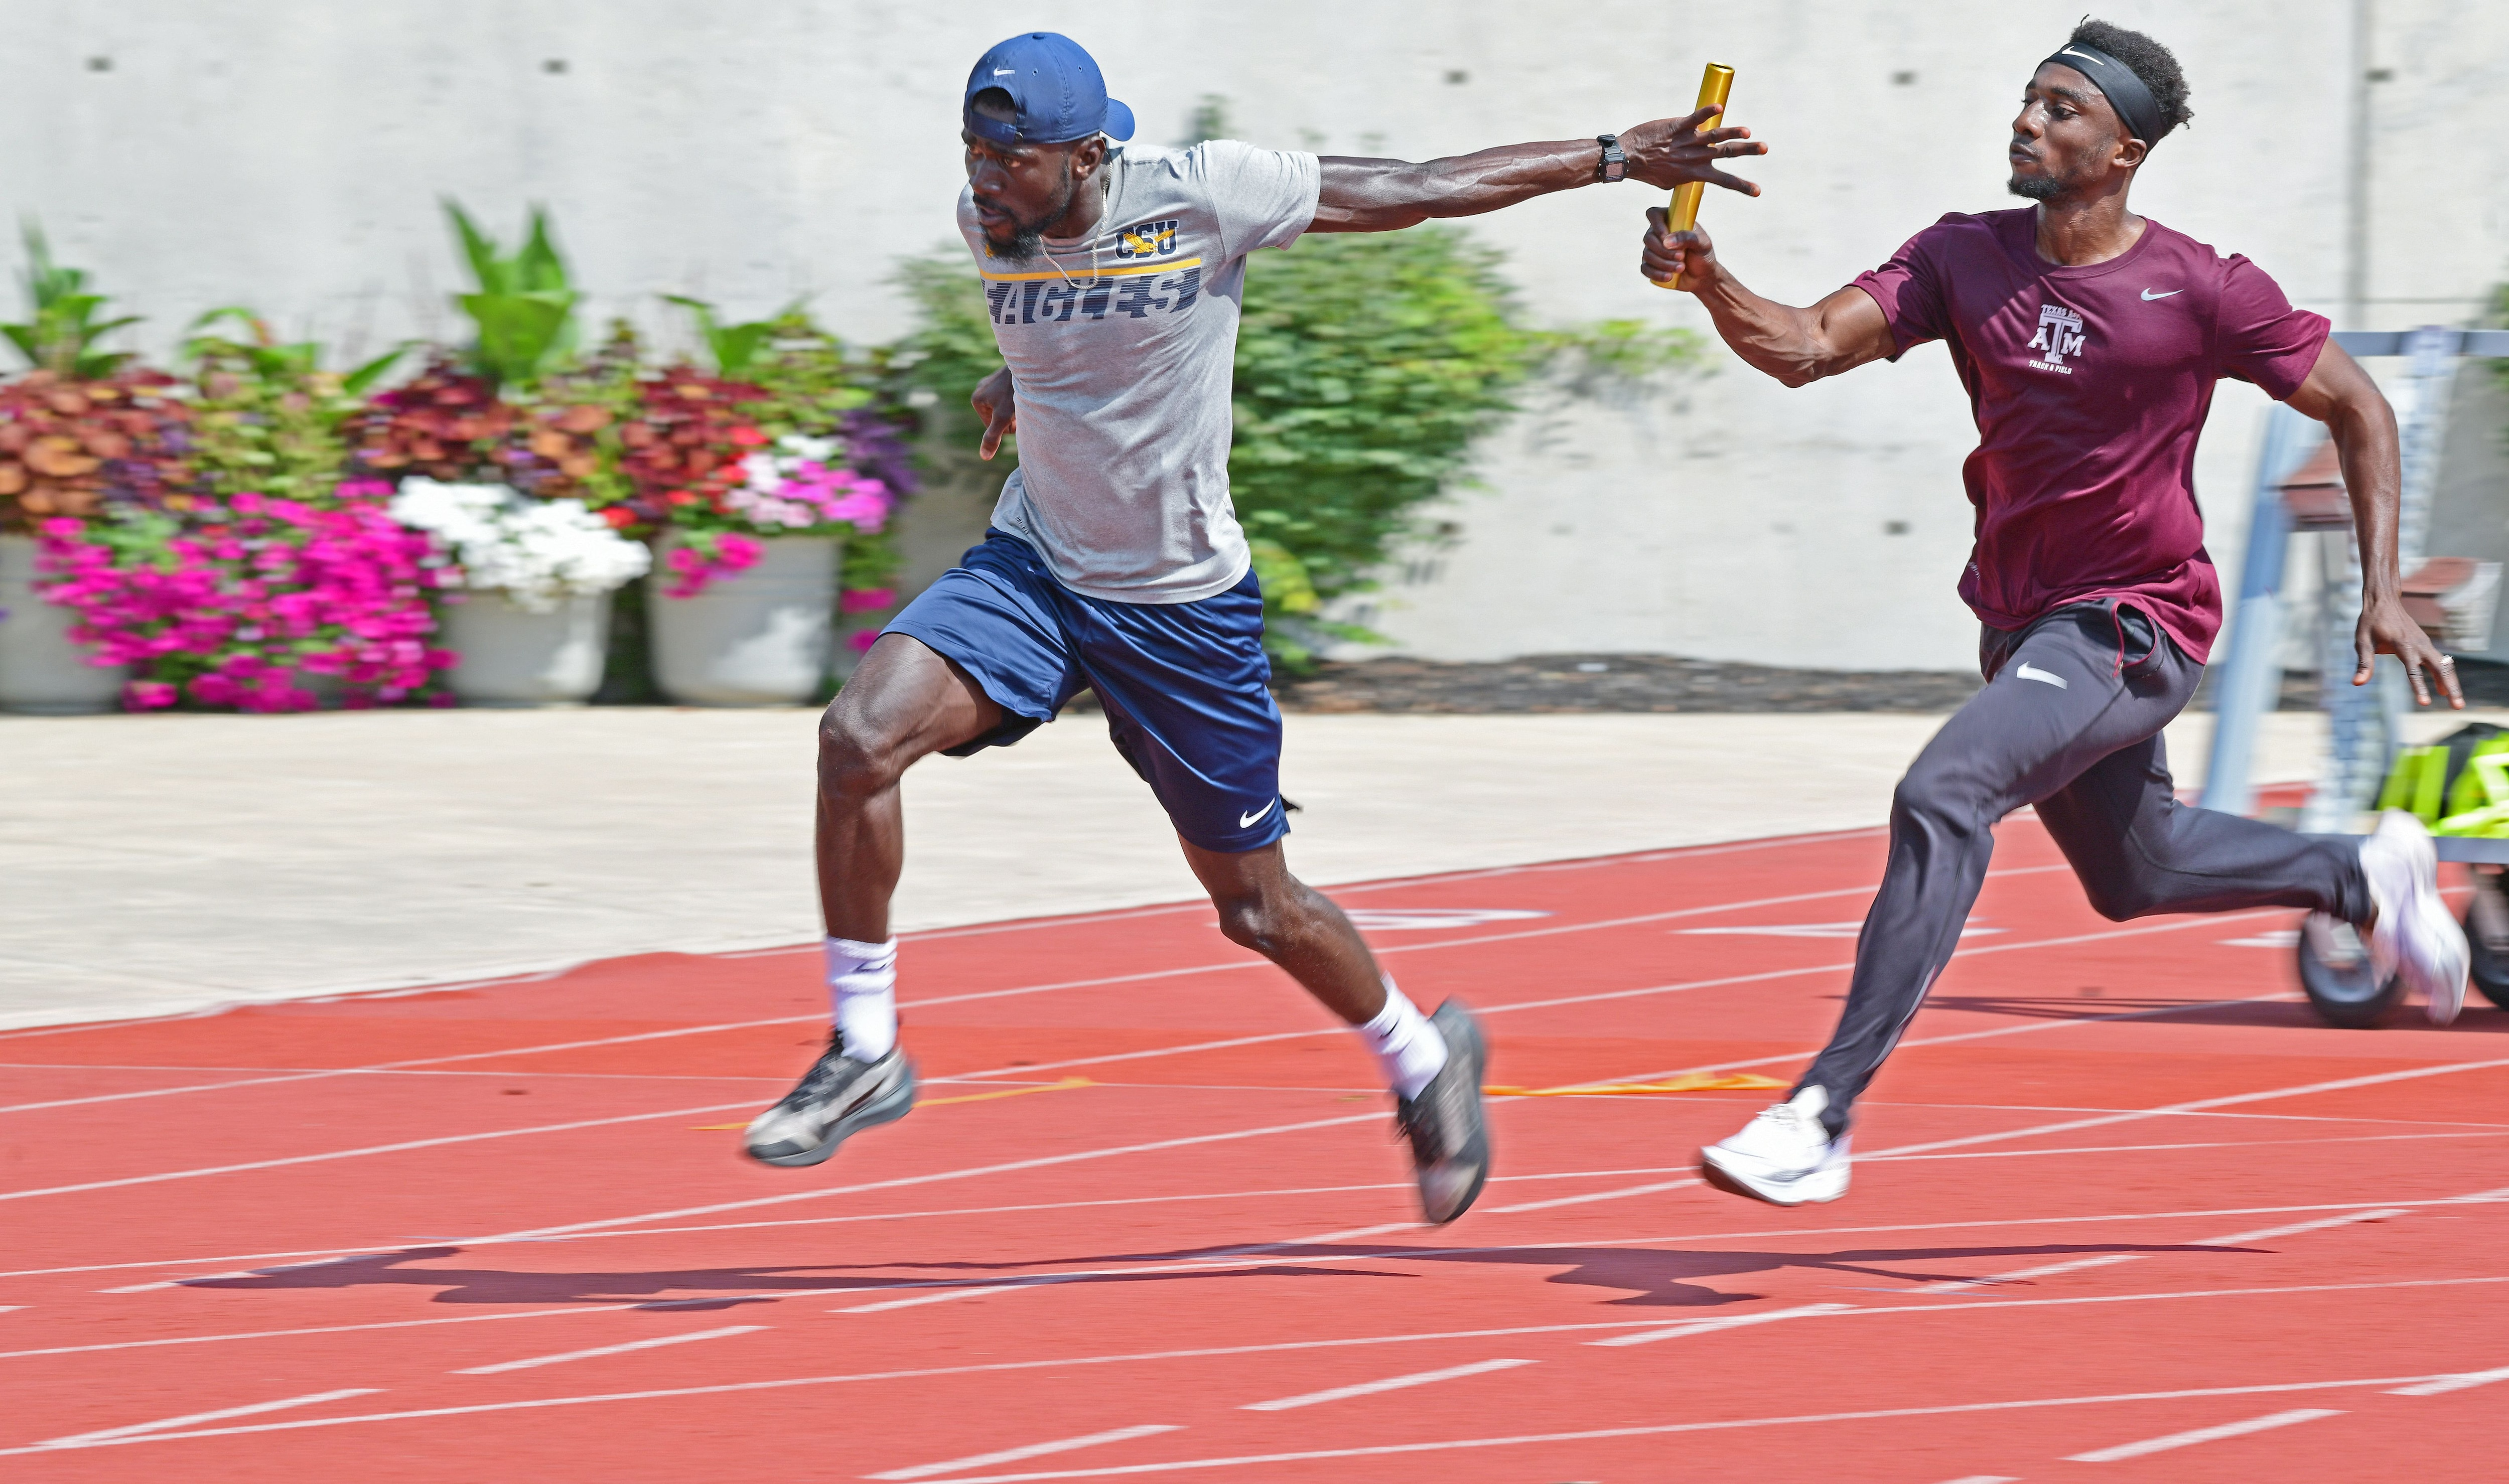 'I feel at home': Sprinters on Ghana's track and field team train in Baltimore for Summer Olympics – Edward Lee